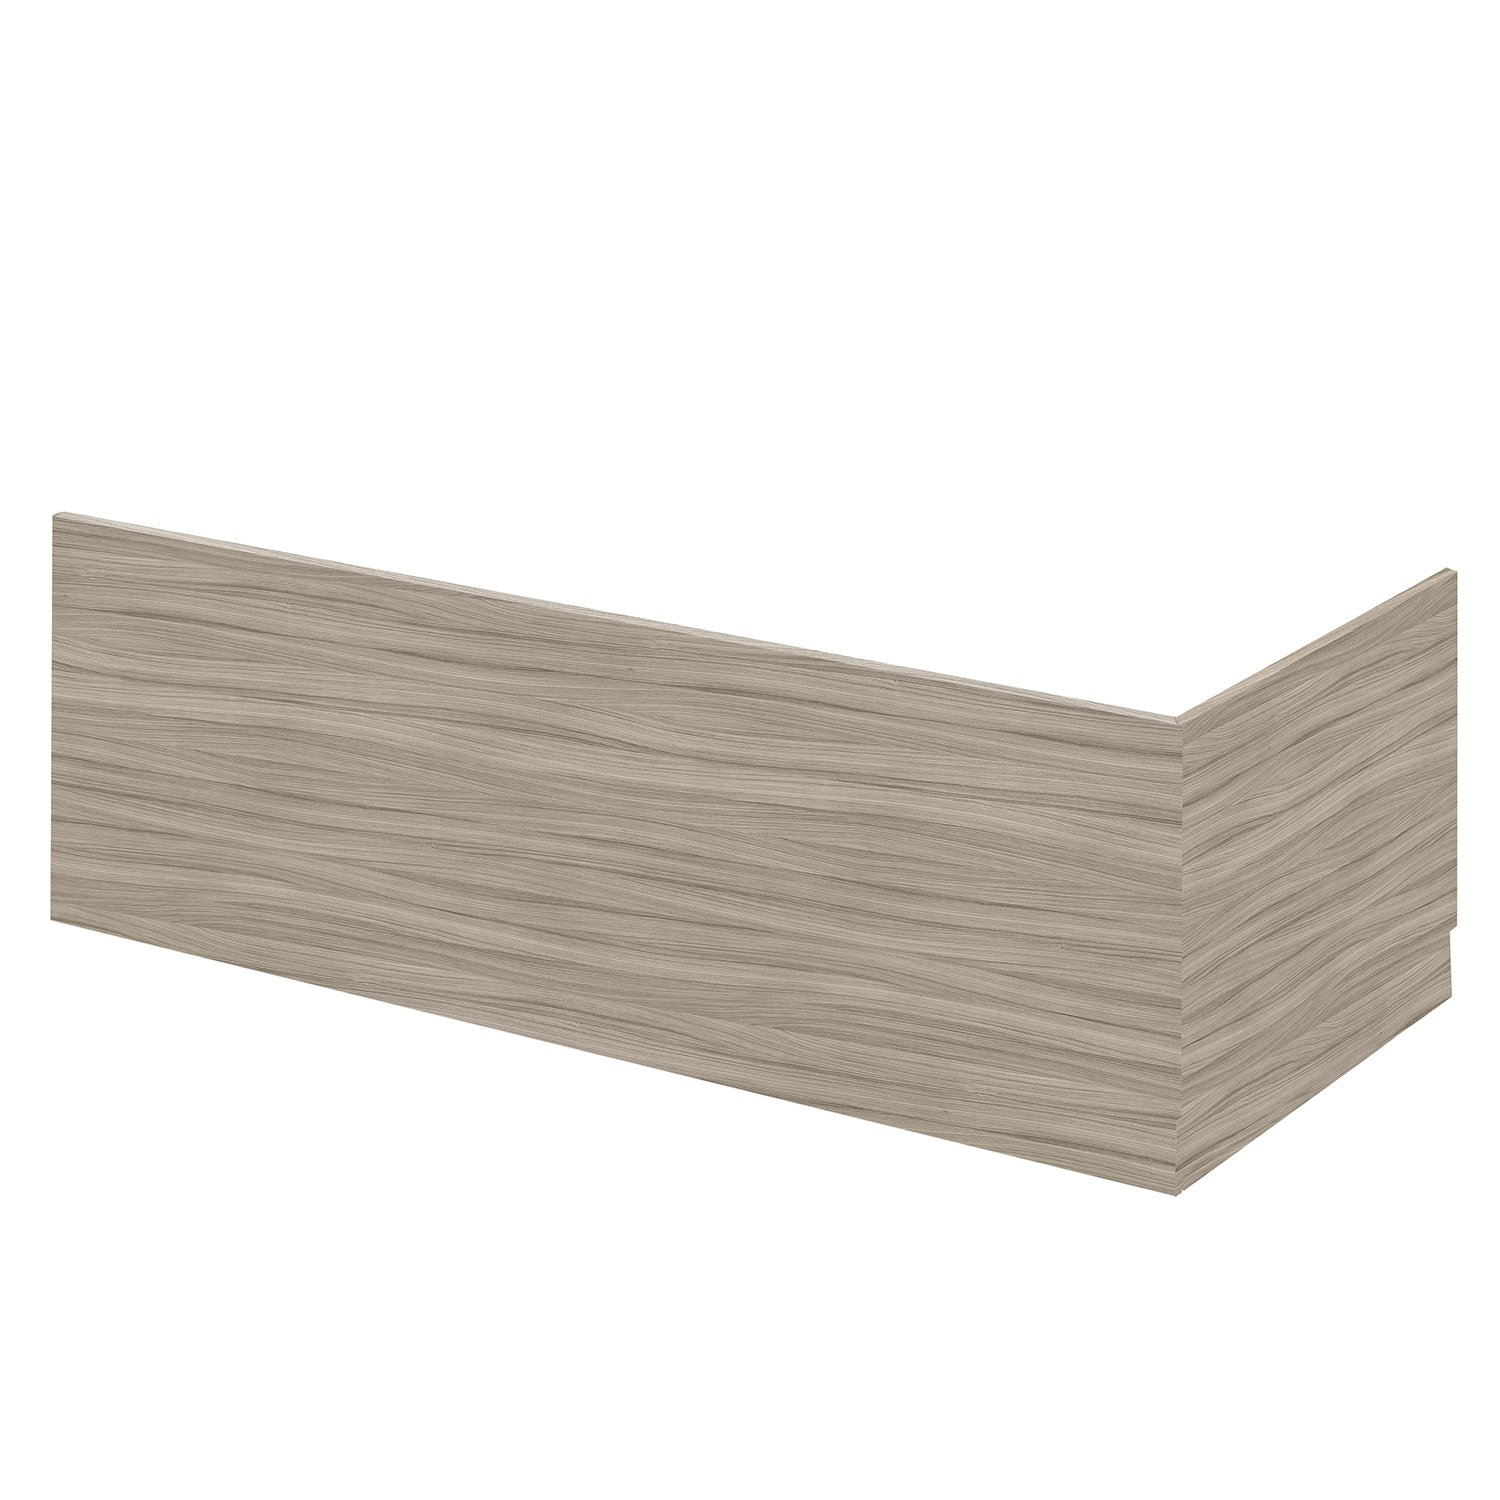 Hudson Reed OFF277 Front Plinth Bath Panels, Driftwood, 1700mm